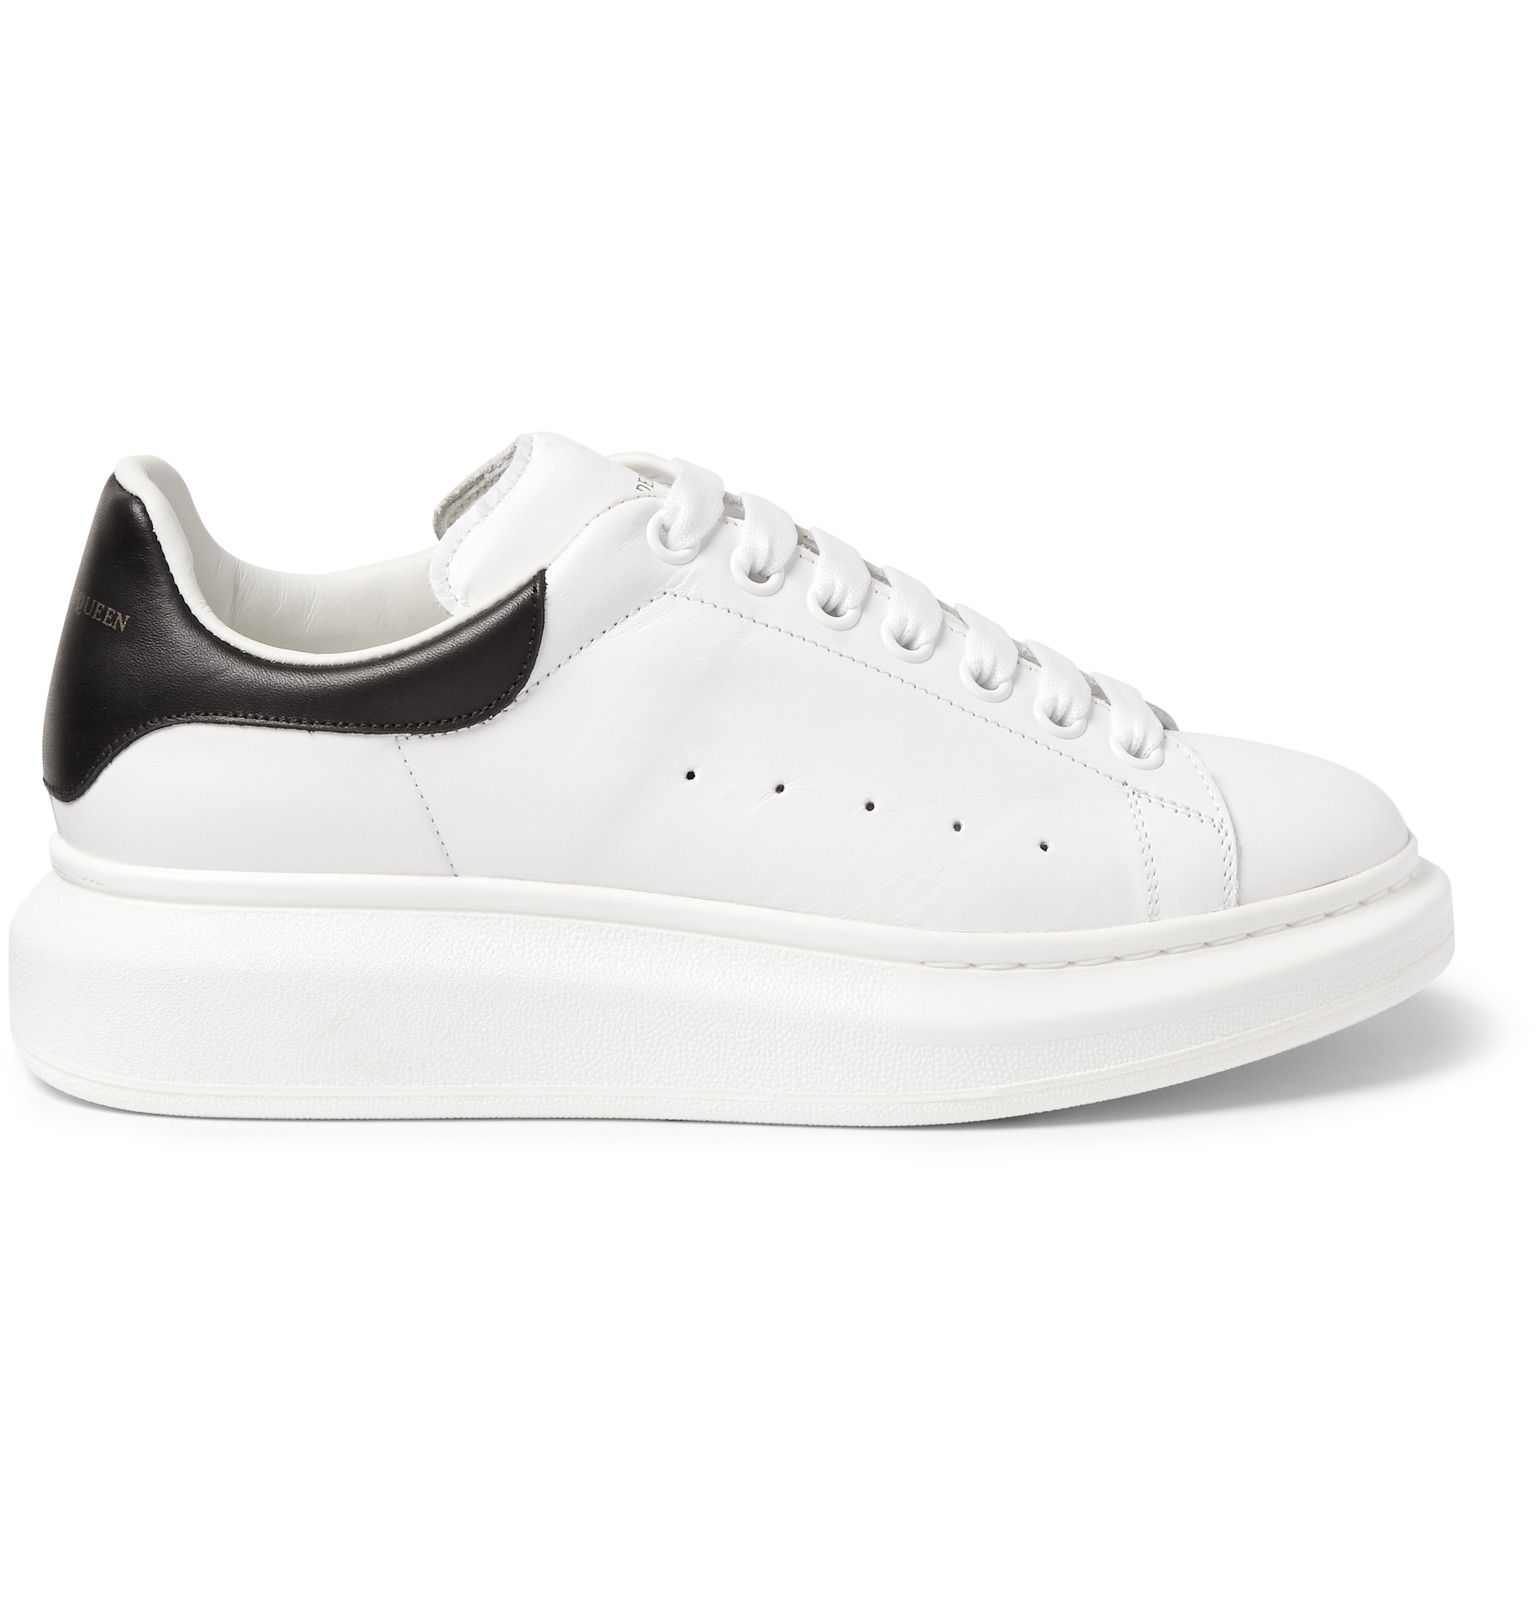 Leather Exaggerated-sole Sneakers - Black Alexander McQueen Clearance Good Selling IzEBbgVo